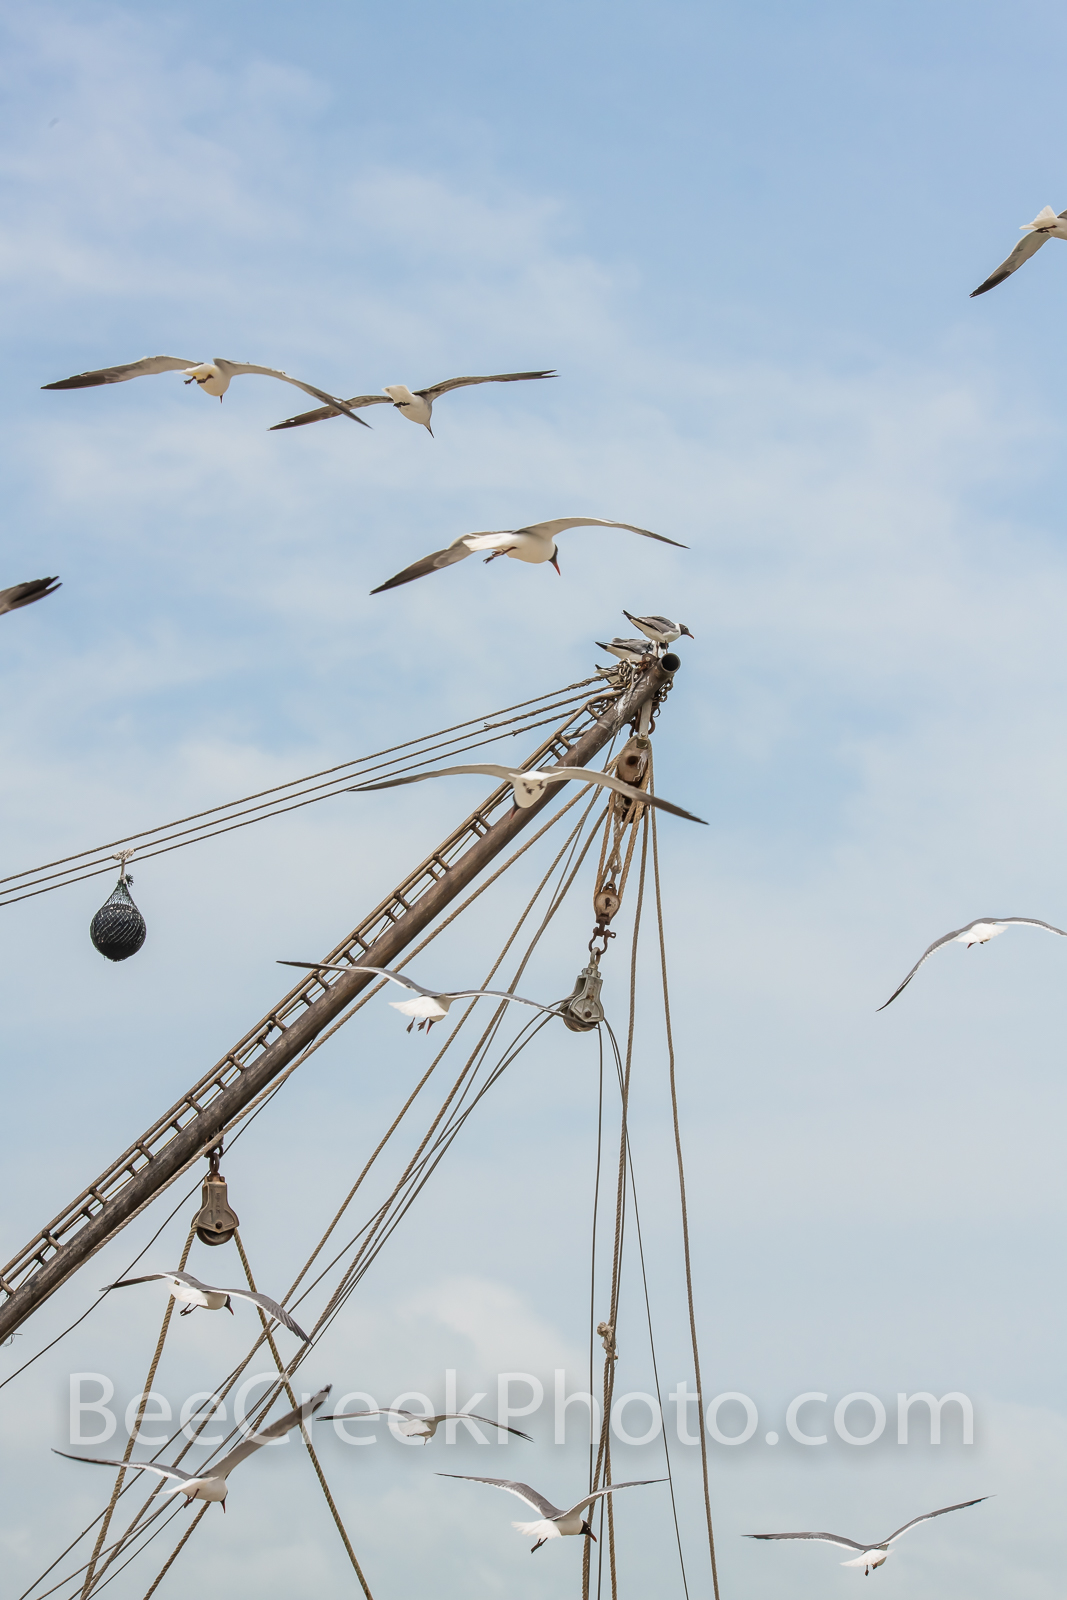 Sea Gulls Fiesta - Sea Gulls Hoover Over Shrimp Boat mast waiting on the days catch to be unloaded. The seagulls have gather...